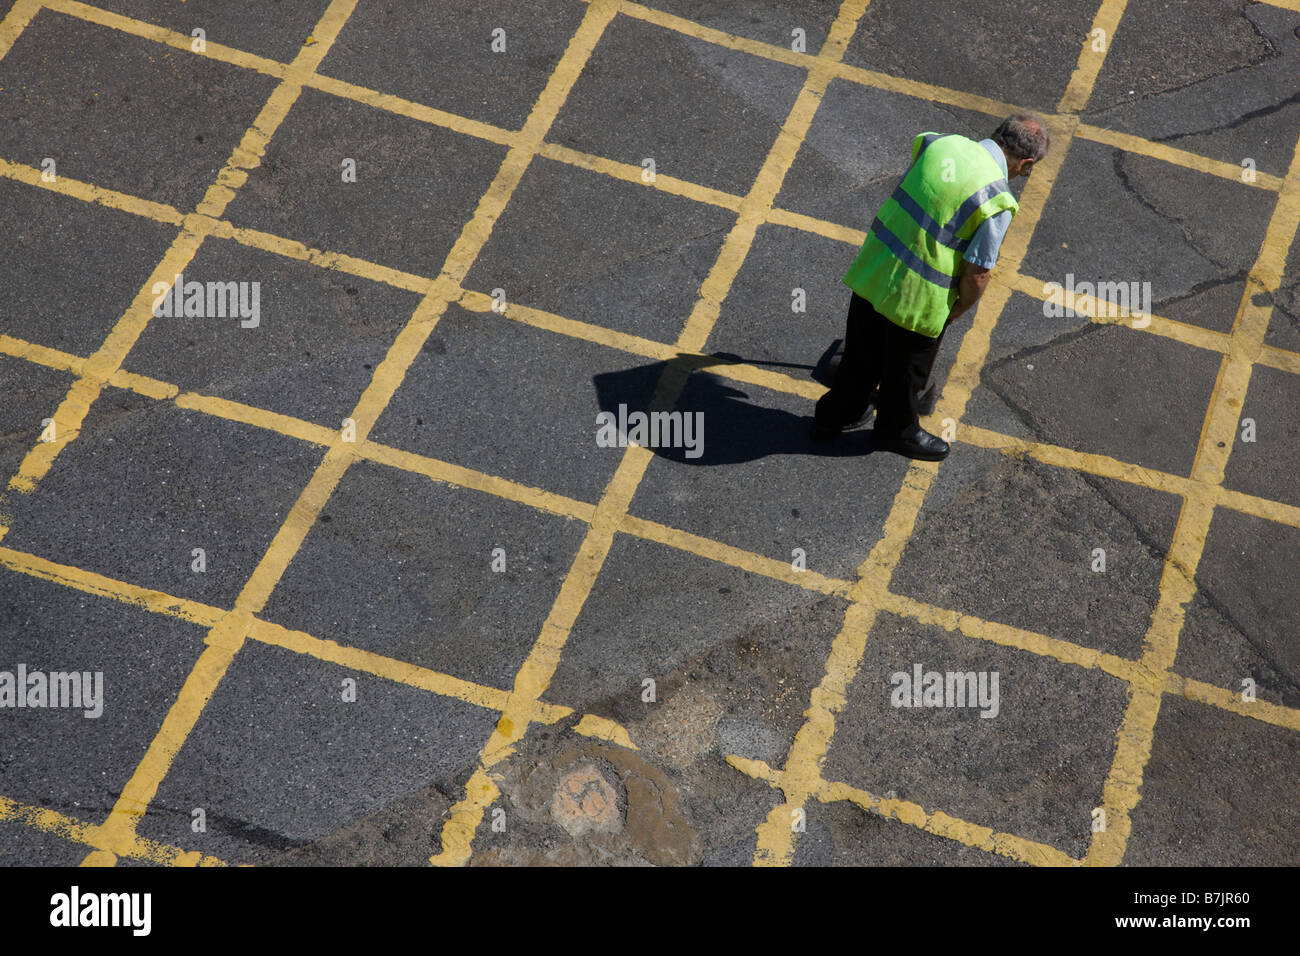 Man picking up litter in a road box junction - Stock Image